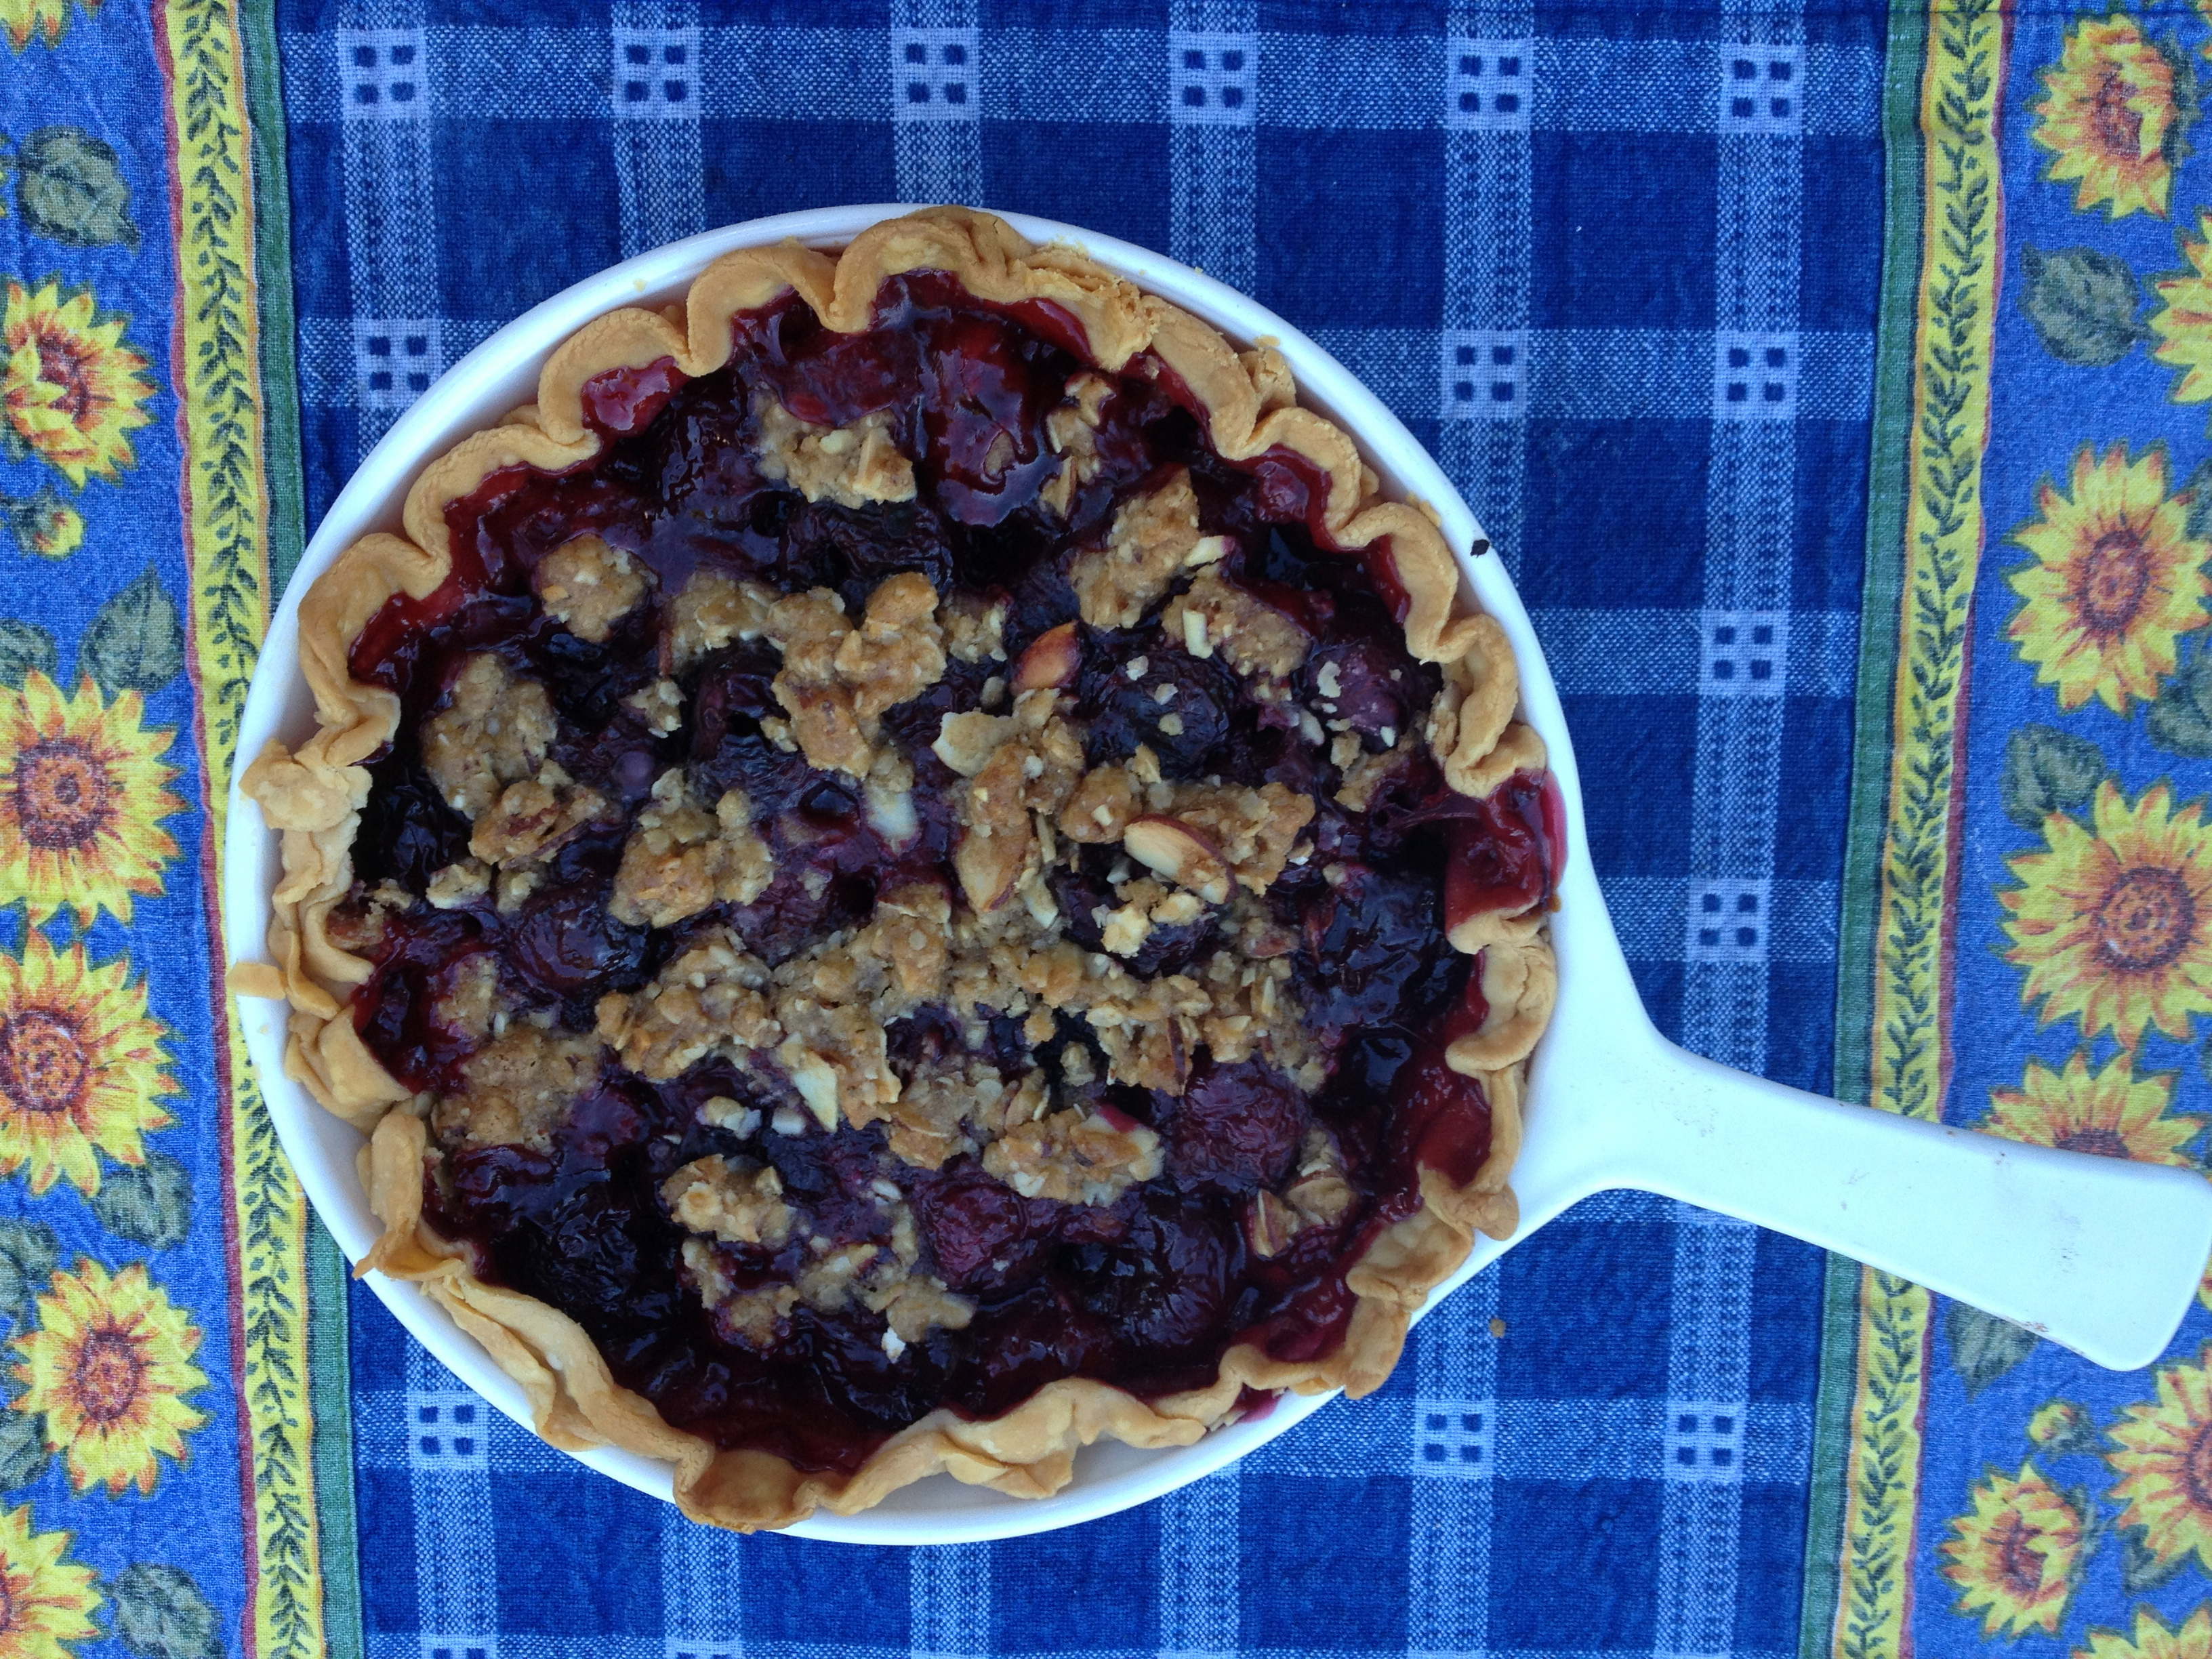 Cherry pie with almond crisp topping